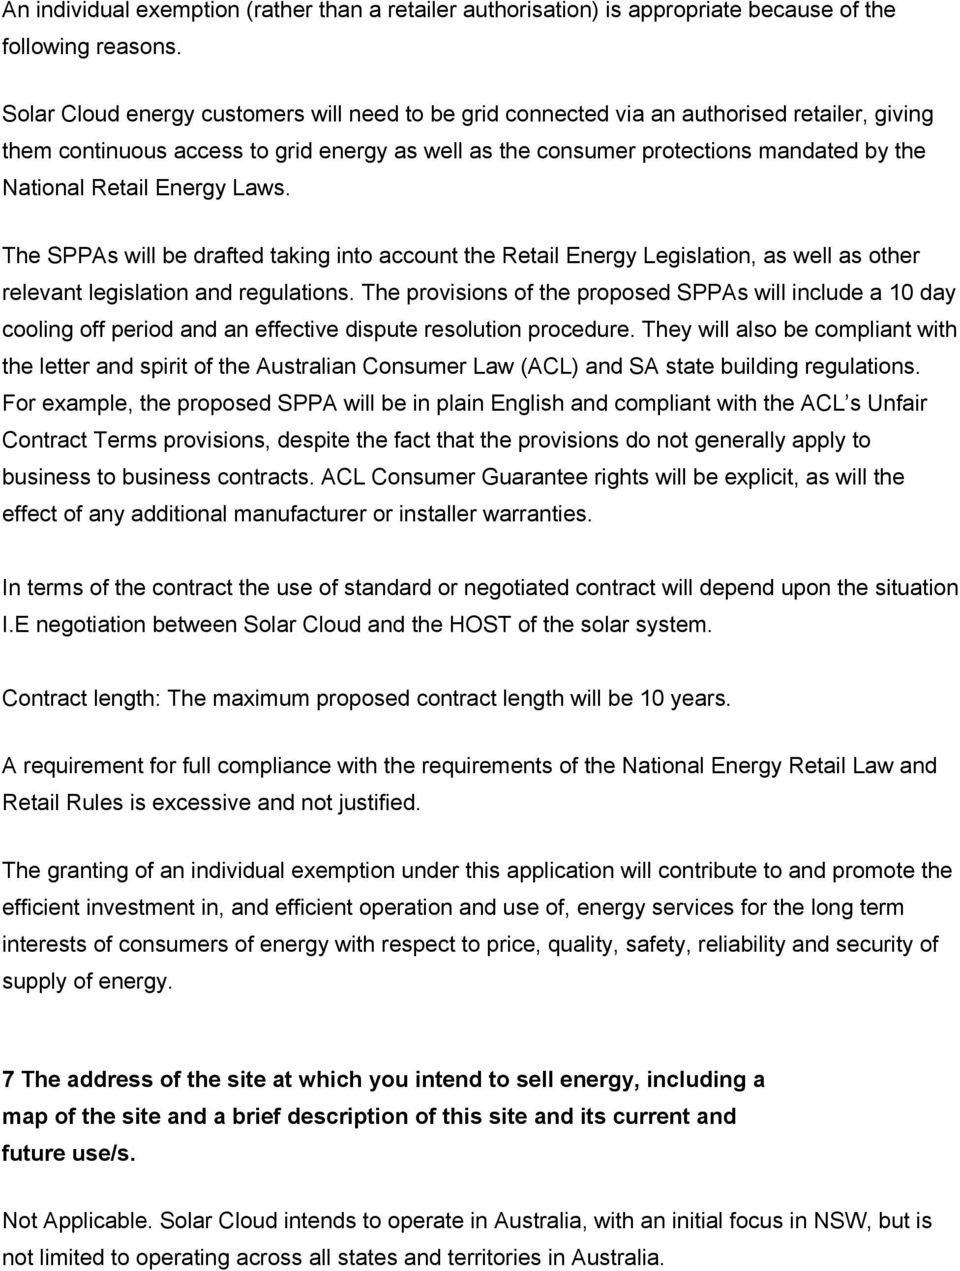 Retail Energy Laws. The SPPAs will be drafted taking into account the Retail Energy Legislation, as well as other relevant legislation and regulations.